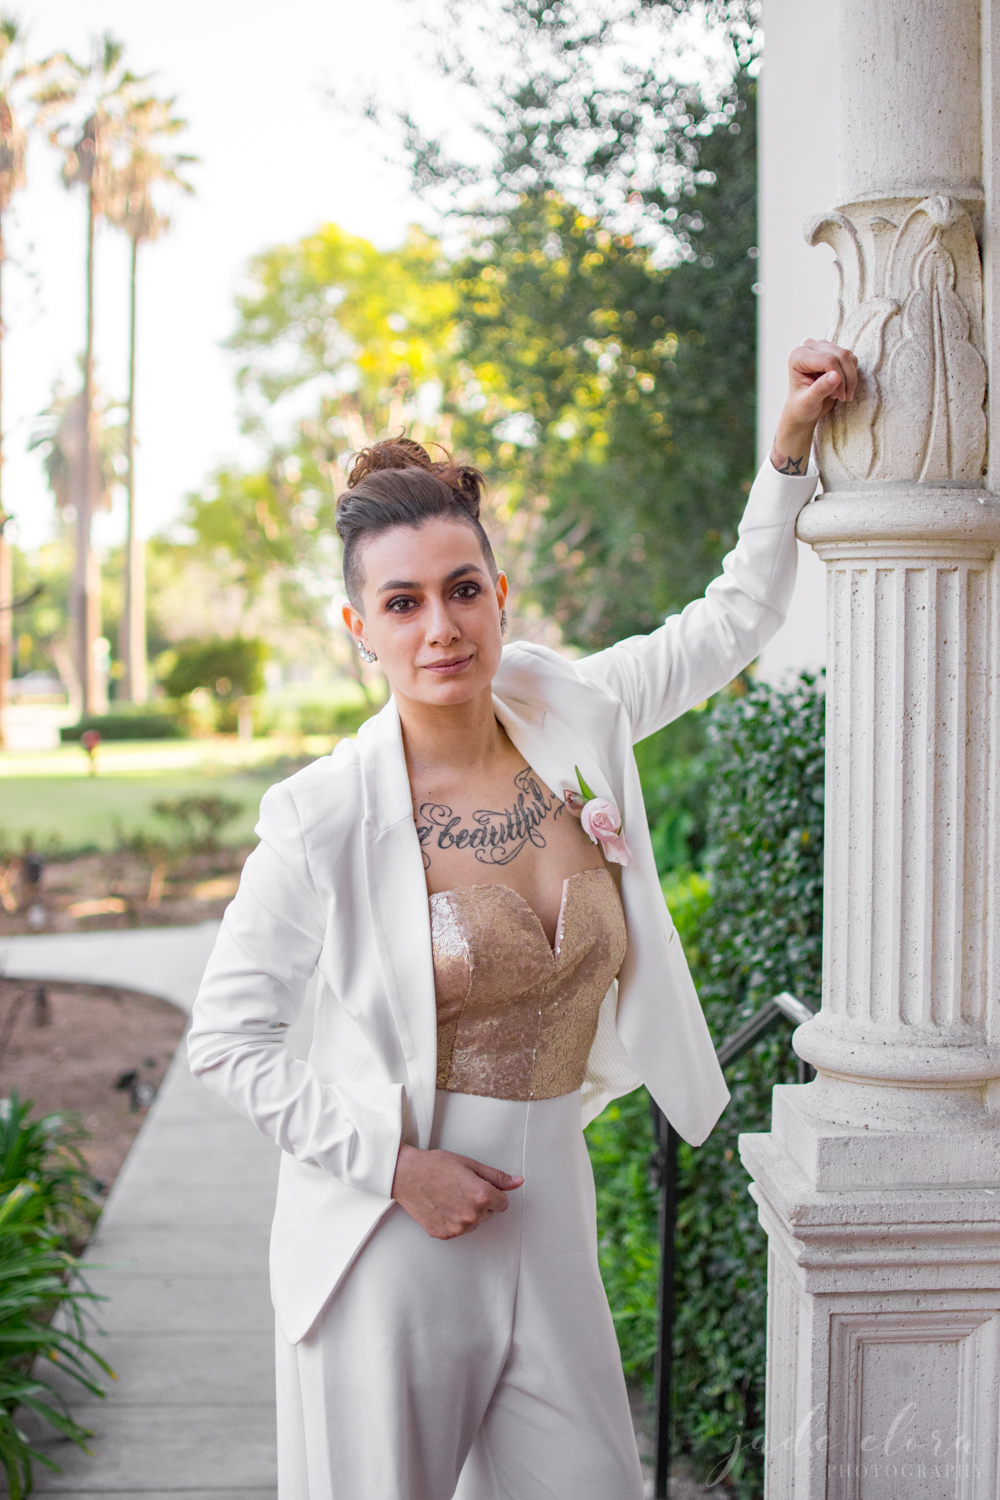 Queer Tattooed Bride in White Jumpsuit with Gold Sequin Top